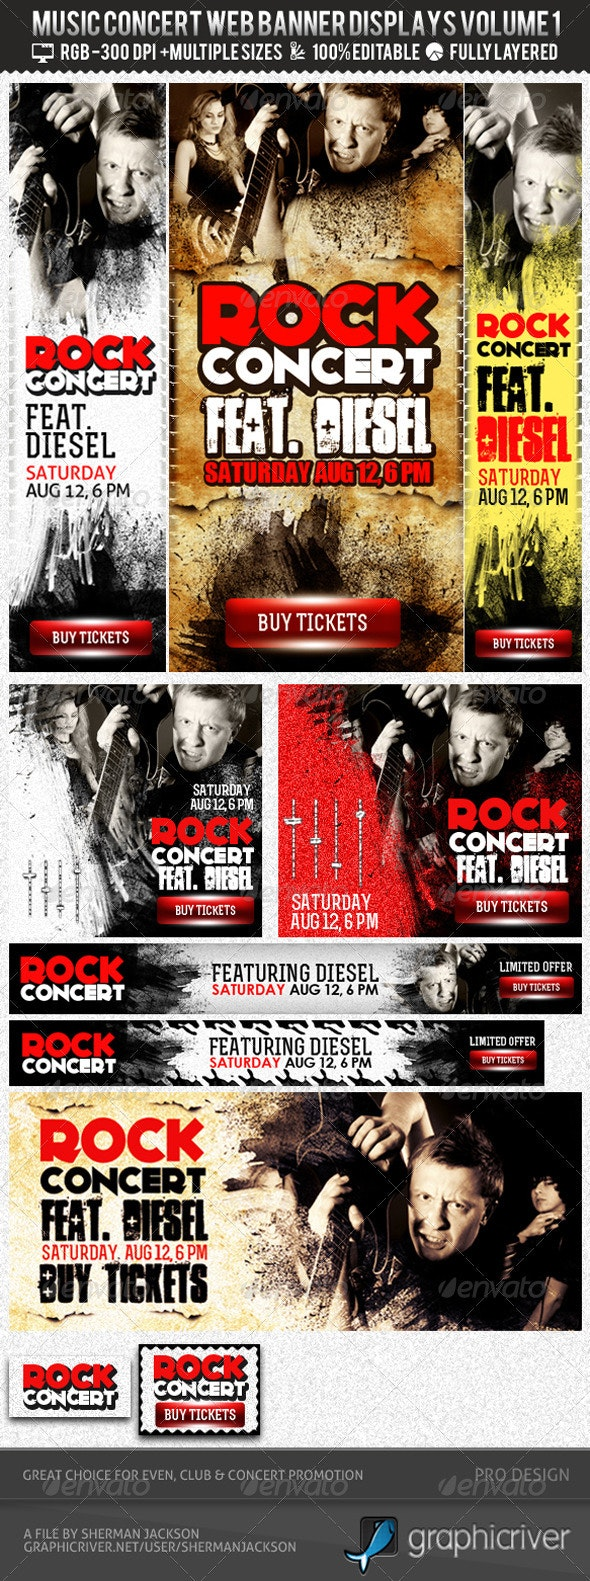 Concert & Event Web Banners & AD Kit PSD - Banners & Ads Web Elements